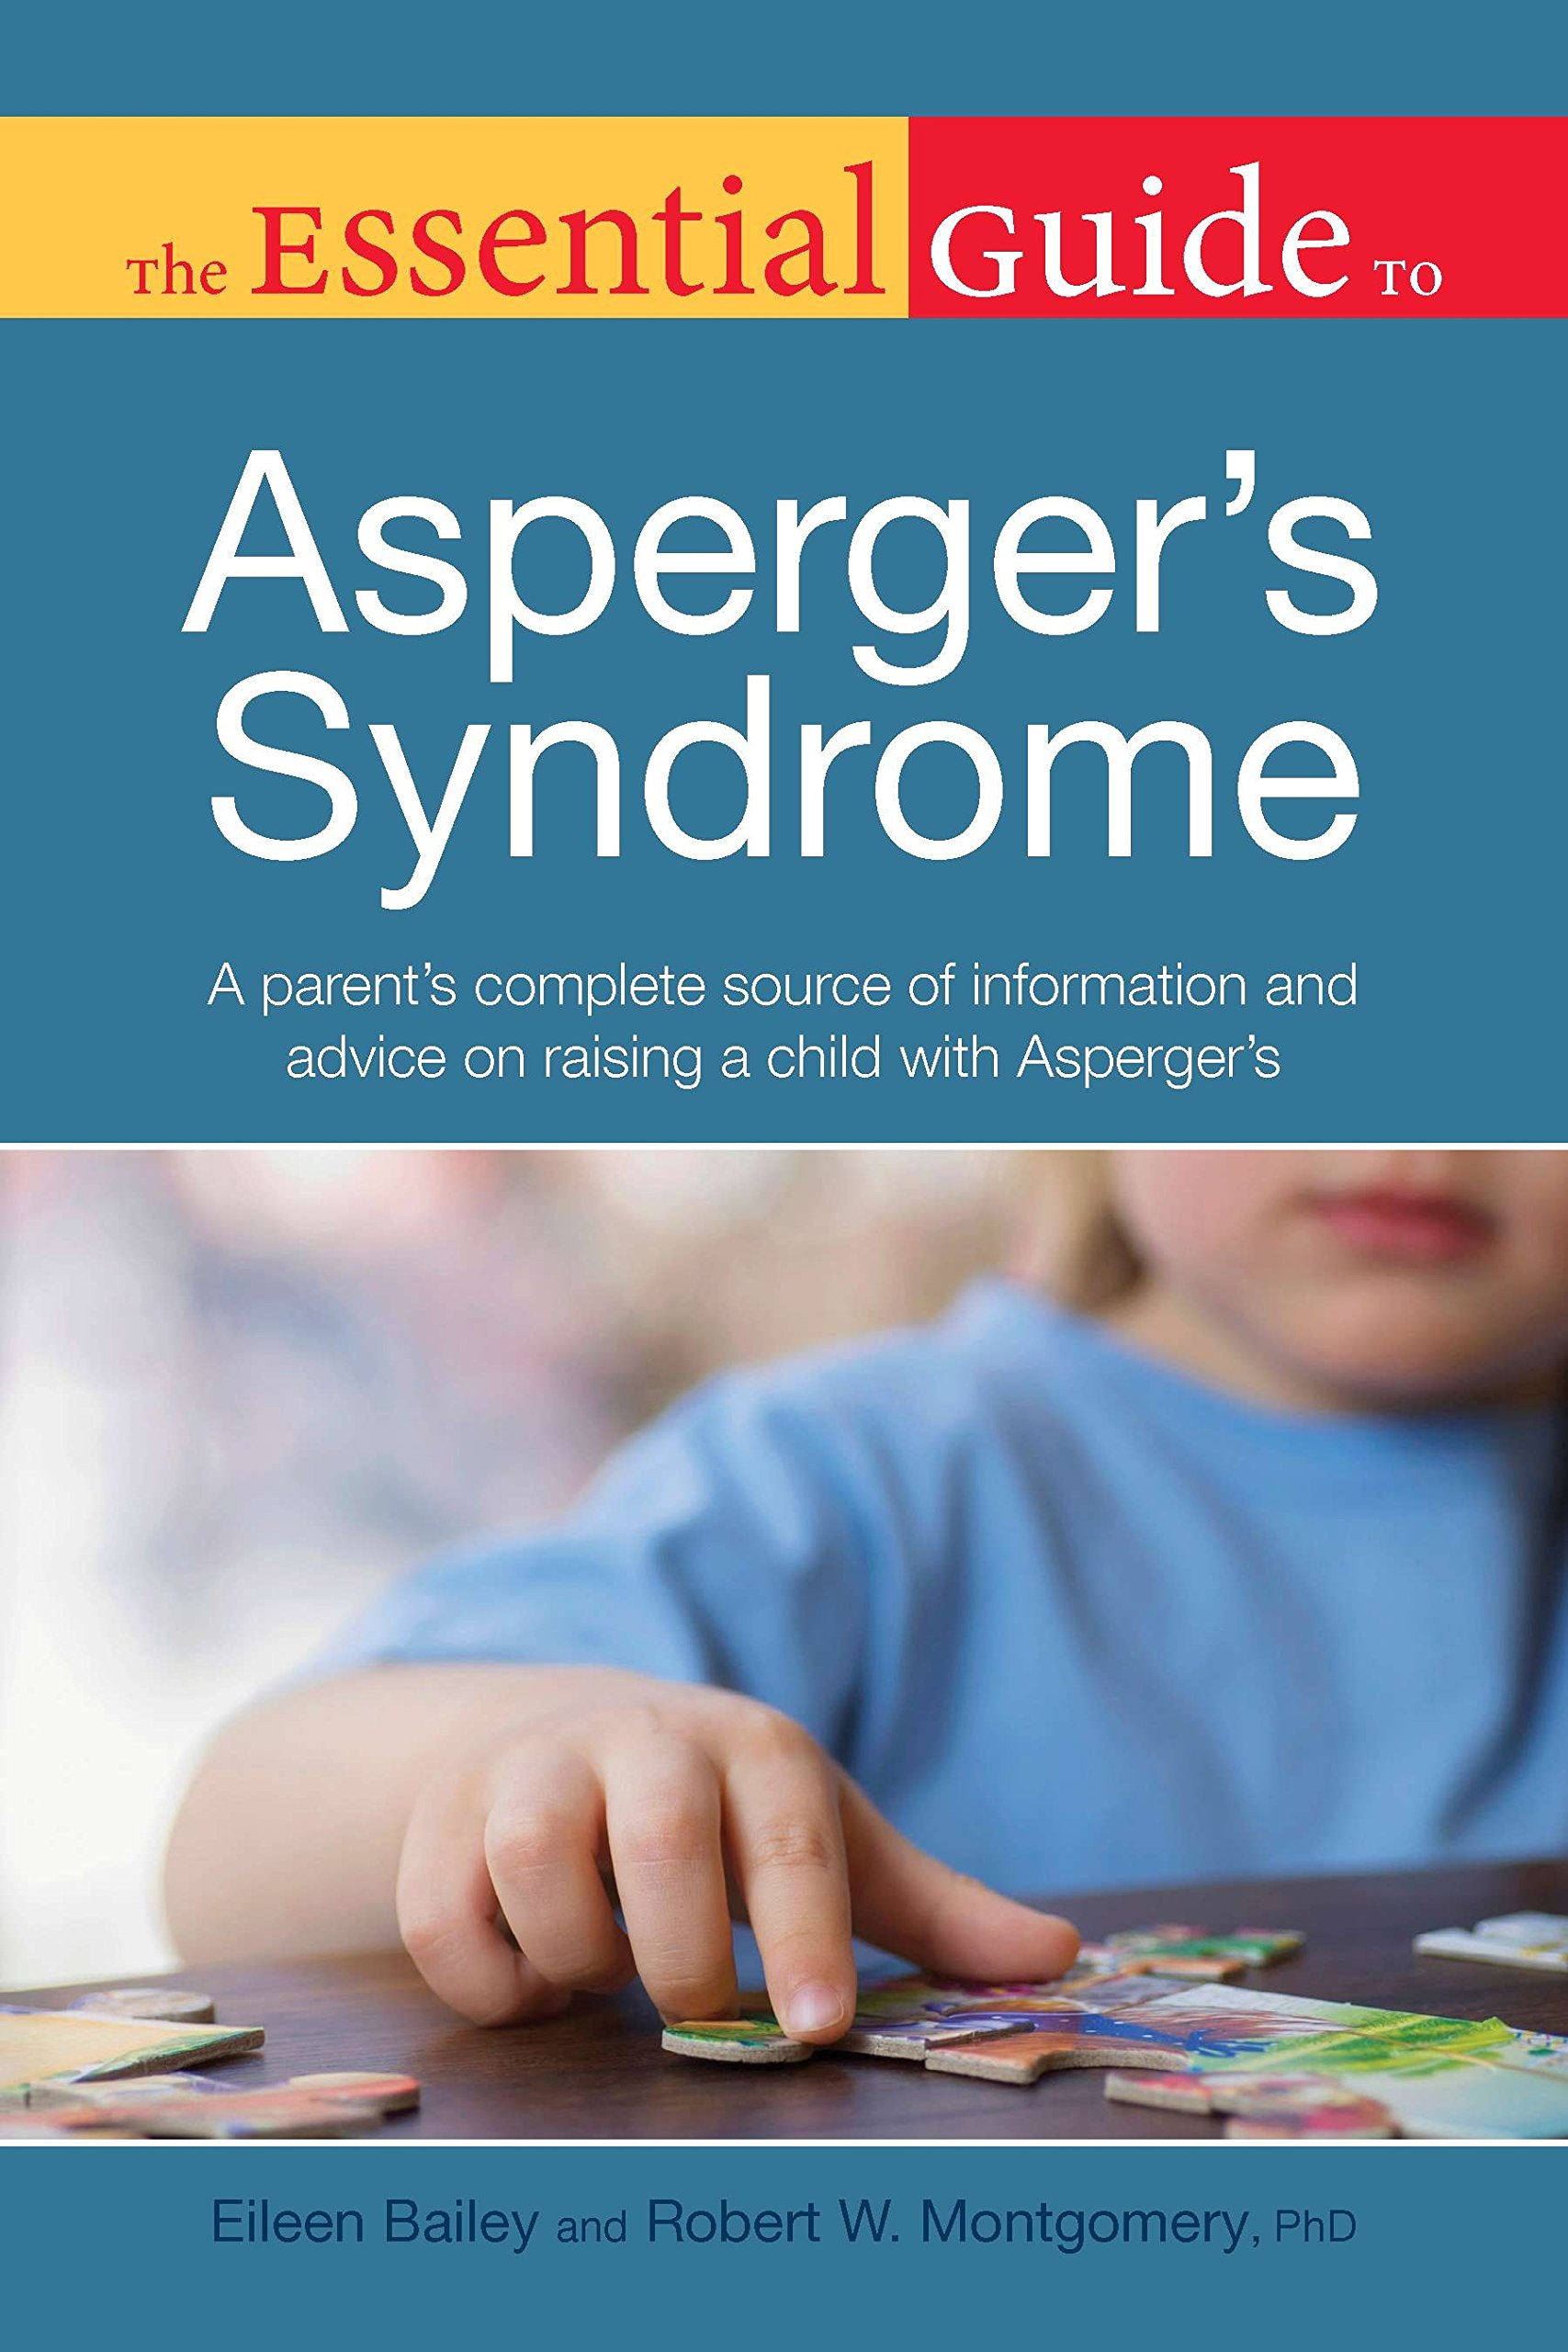 Asperger Syndrome: The OASIS Guide - Home   Facebook